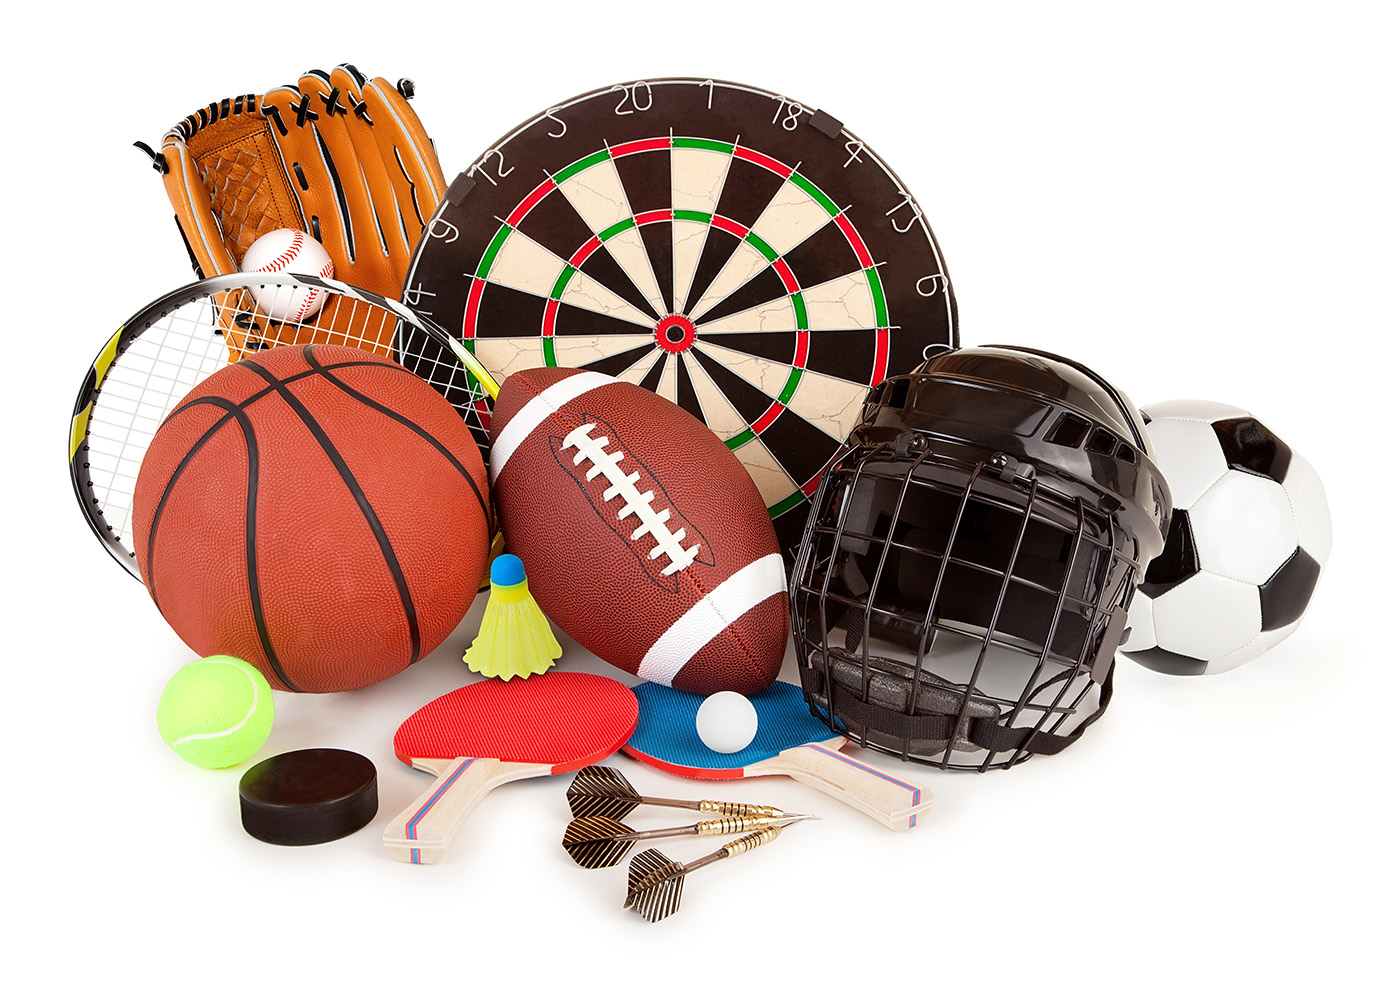 Darts tennis basketball and other sports goods 50380